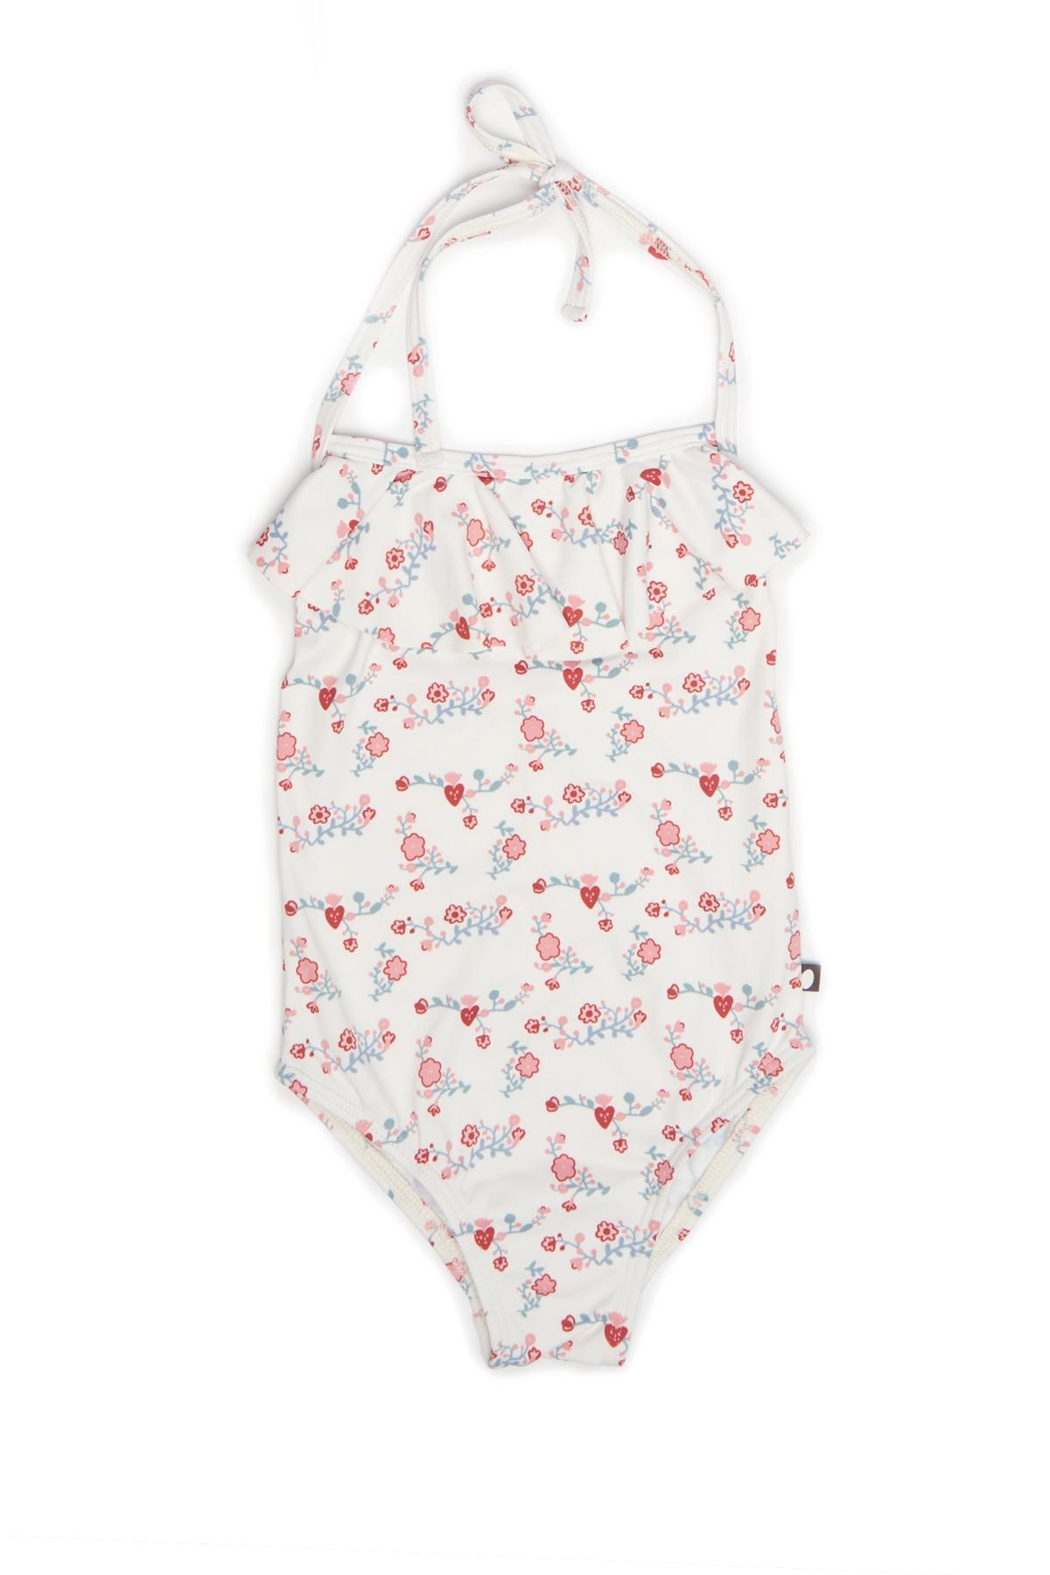 119285f54a Oeuf Halter Flower Swimsuit from Englewood by Milk and Honey Babies ...